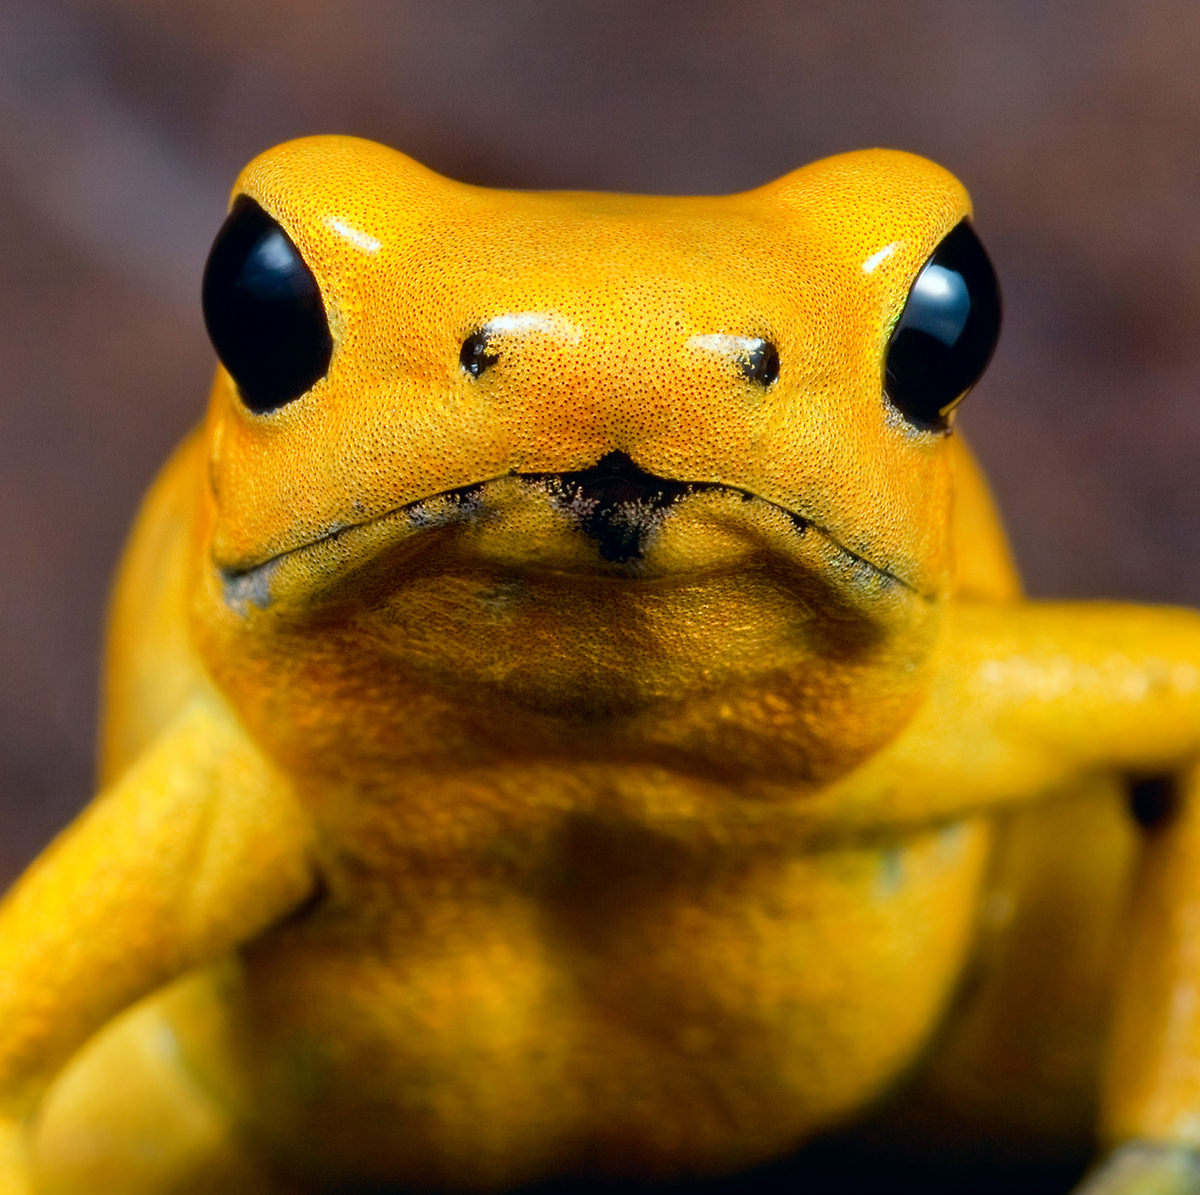 Poison dart frog portrait of phyllobates terribilis OF the amazon rainforest in Colombia, very toxic and poisonous animal,big black amphibian eyes and bright yellow color